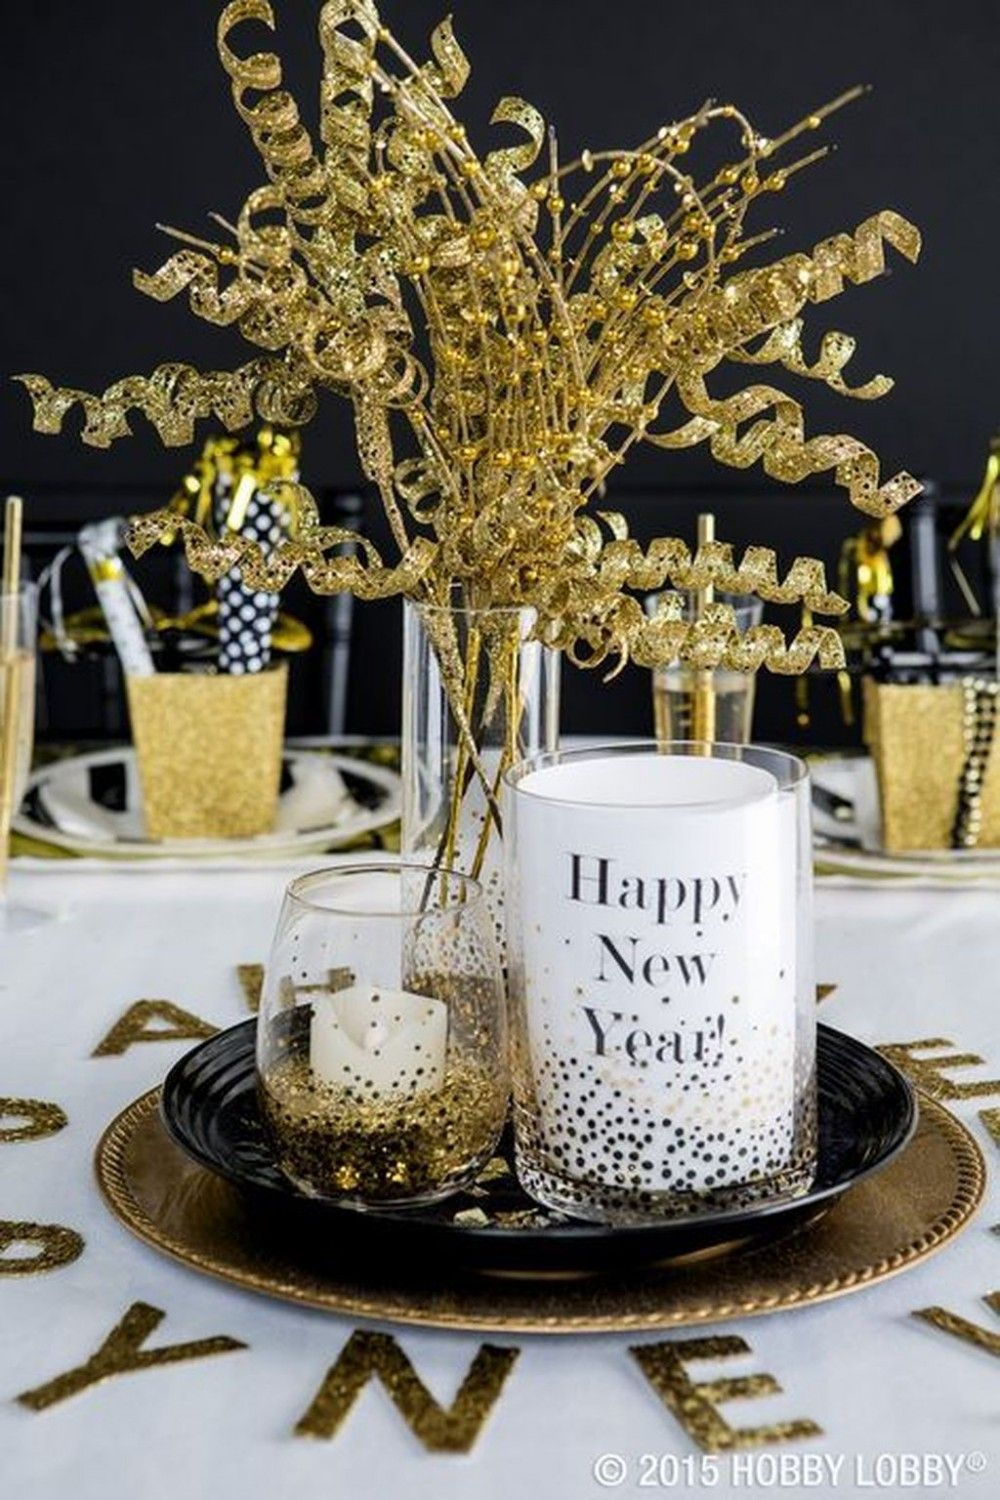 20 Gorgeous Gold And Black New Years Eve Party Decor Ideas You Should Try New Years Eve Decorations New Years Eve Party Ideas Decorations Kids New Years Eve